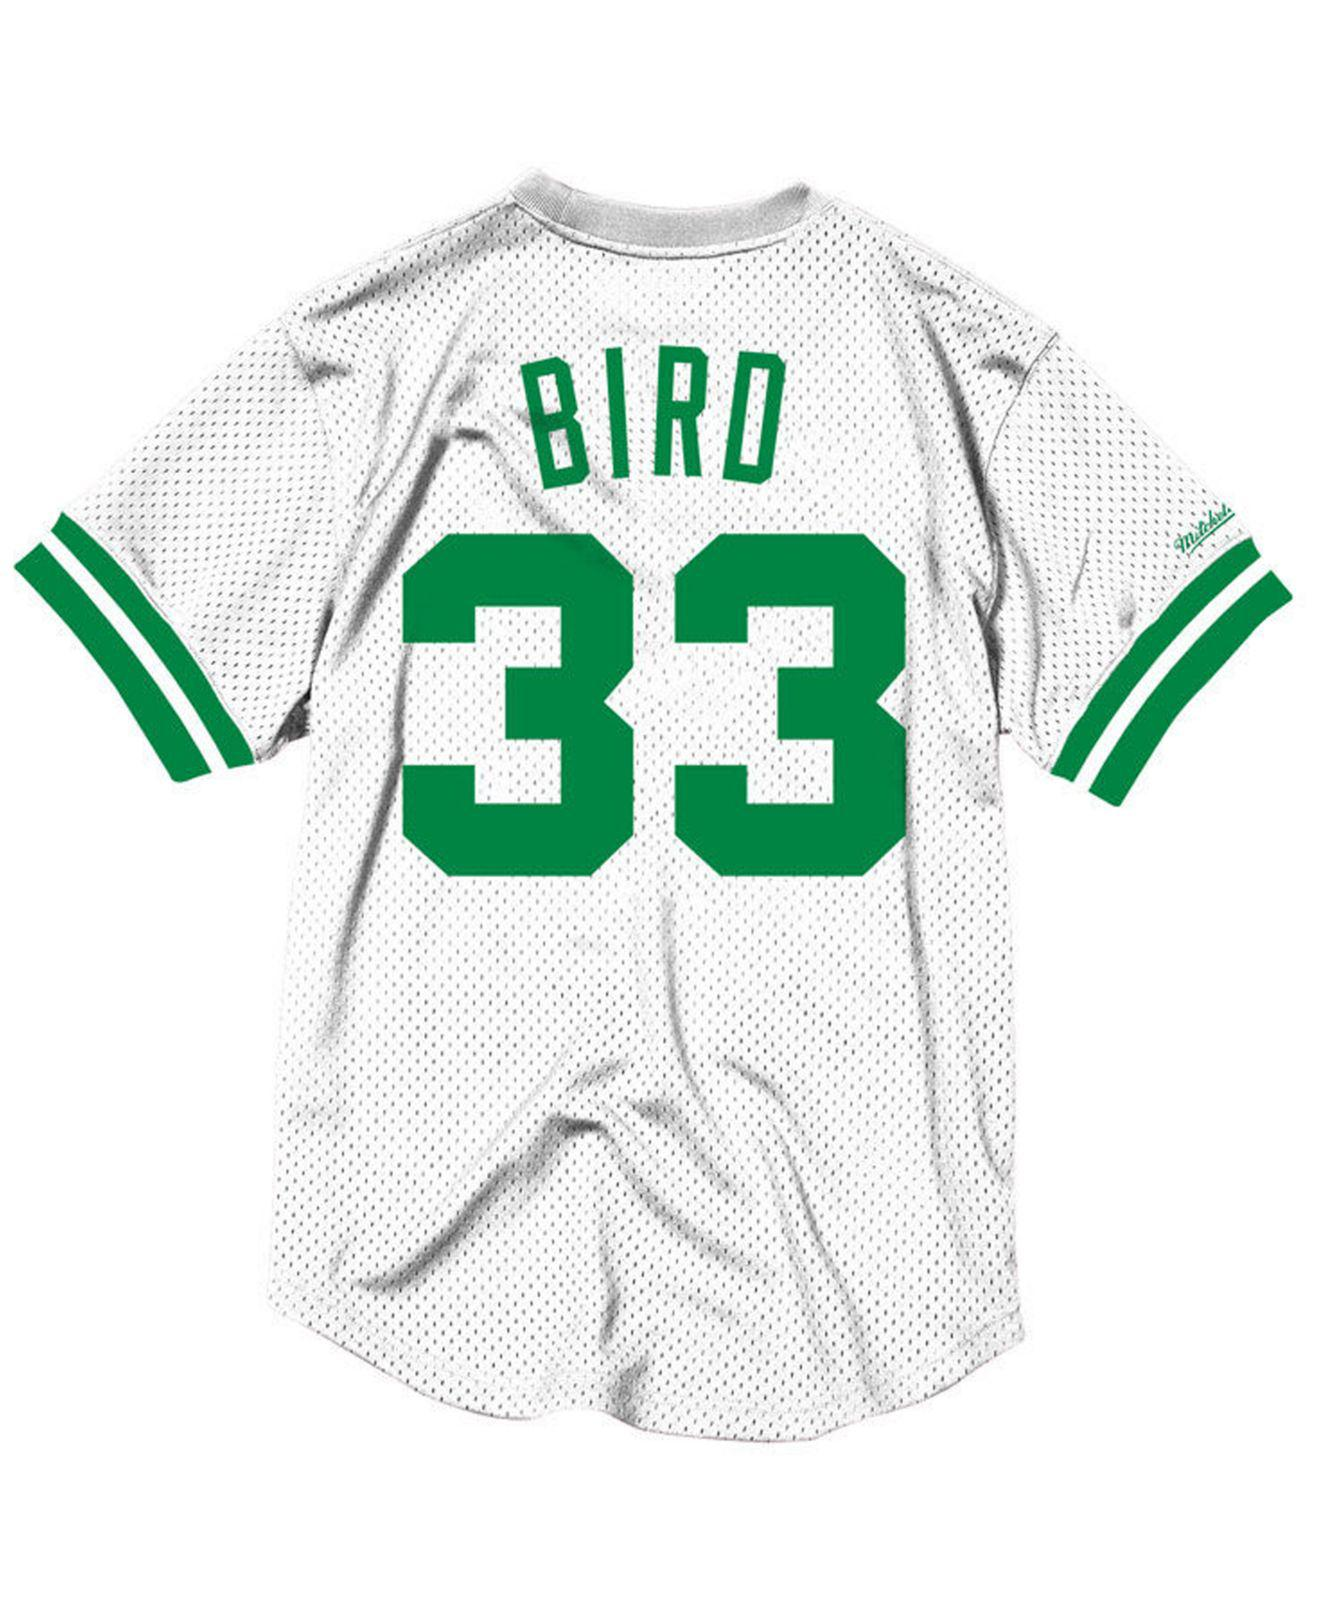 b3772485562 Mitchell & Ness Larry Bird Boston Celtics Name And Number Mesh Crewneck  Jersey in White for Men - Lyst